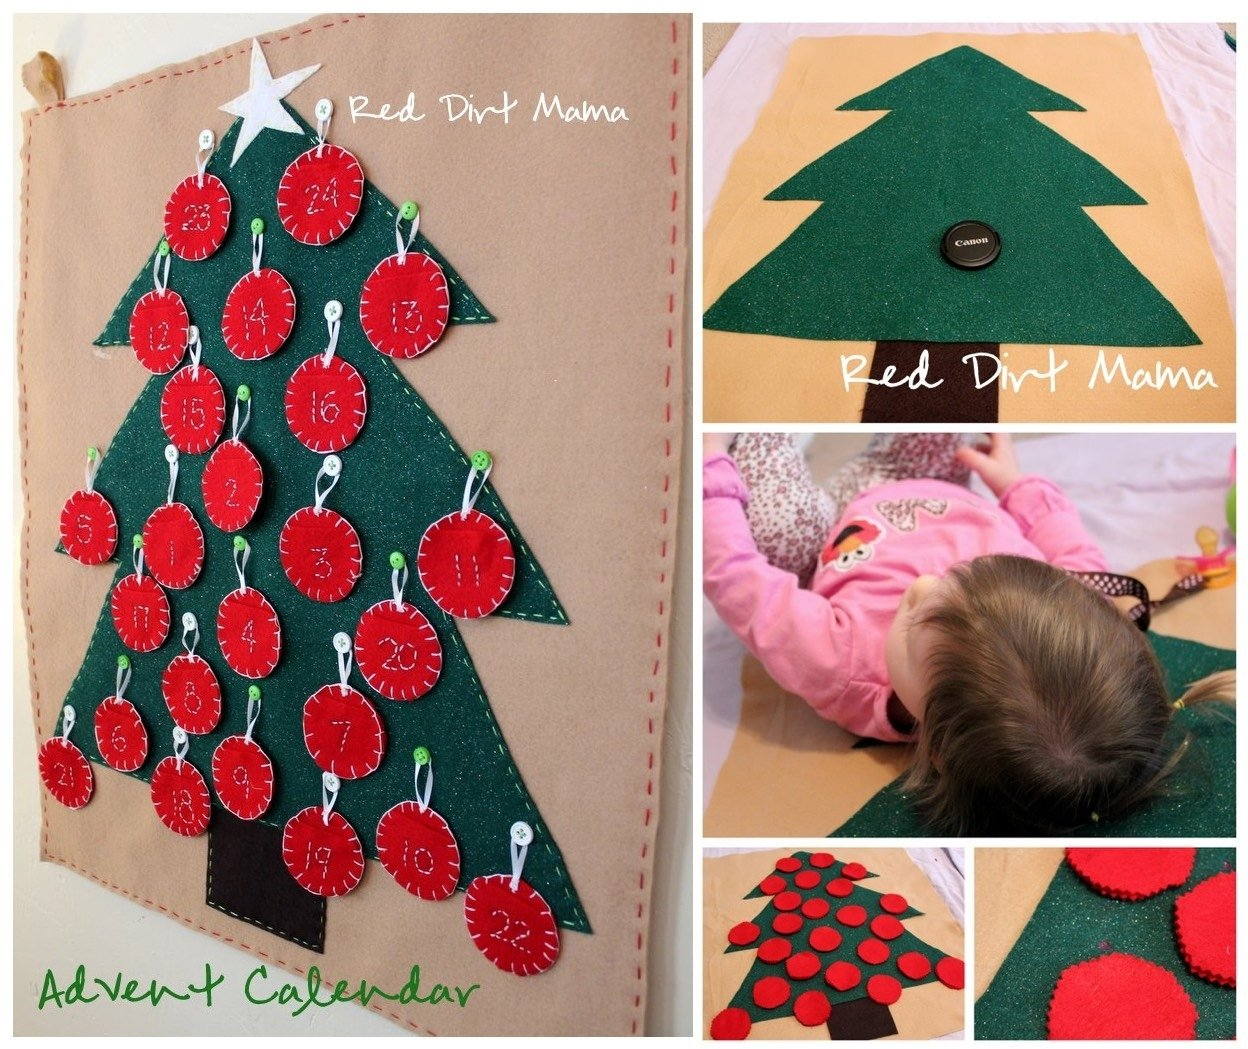 10 Beautiful Advent Calendar Ideas For Kids top 15 ideas for the best diy advent calendar for kids advent 2020